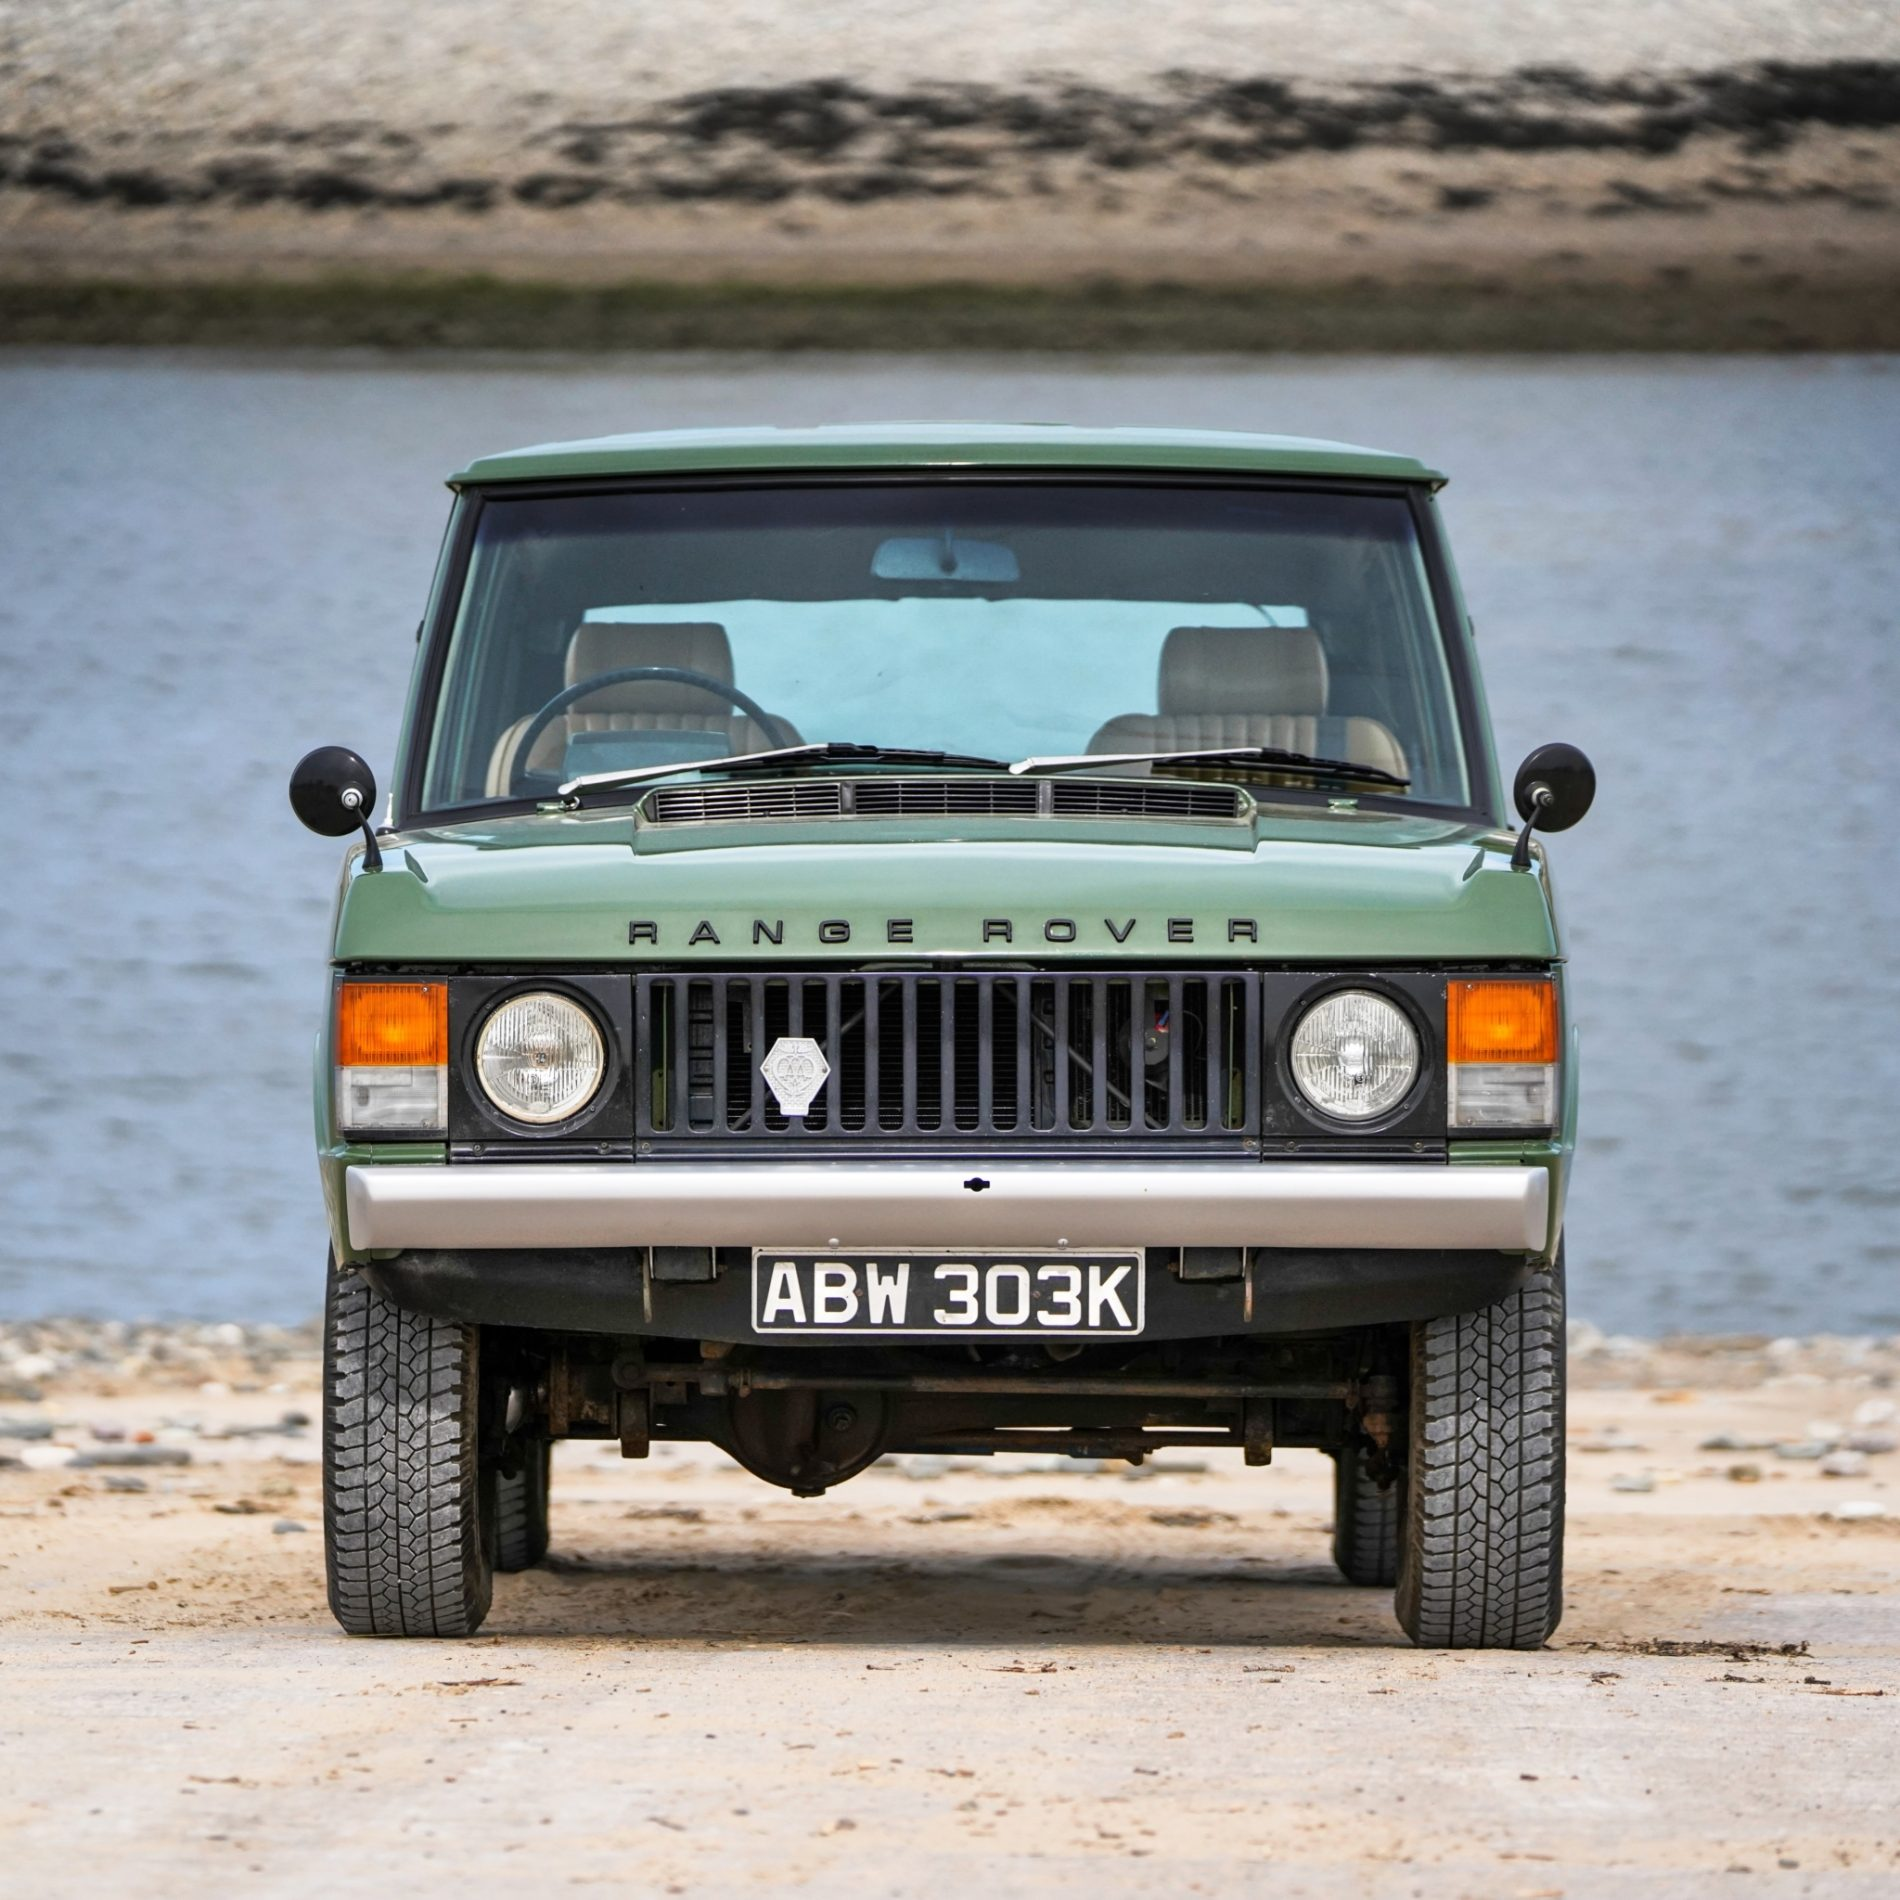 Land Rover Range Rover Suffix A Lincoln Green 1972 (ABW